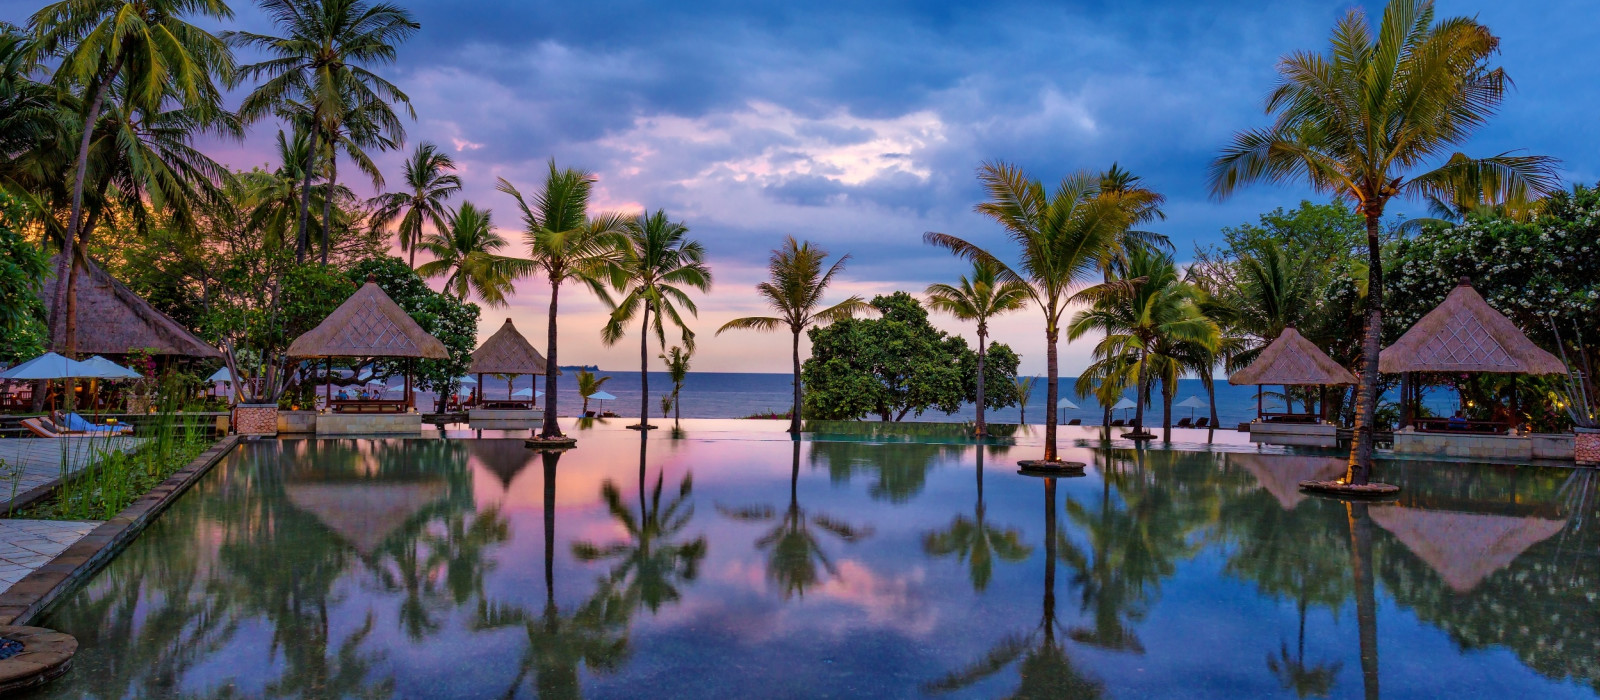 Hotel The Oberoi Beach Resort, Lombok Indonesien